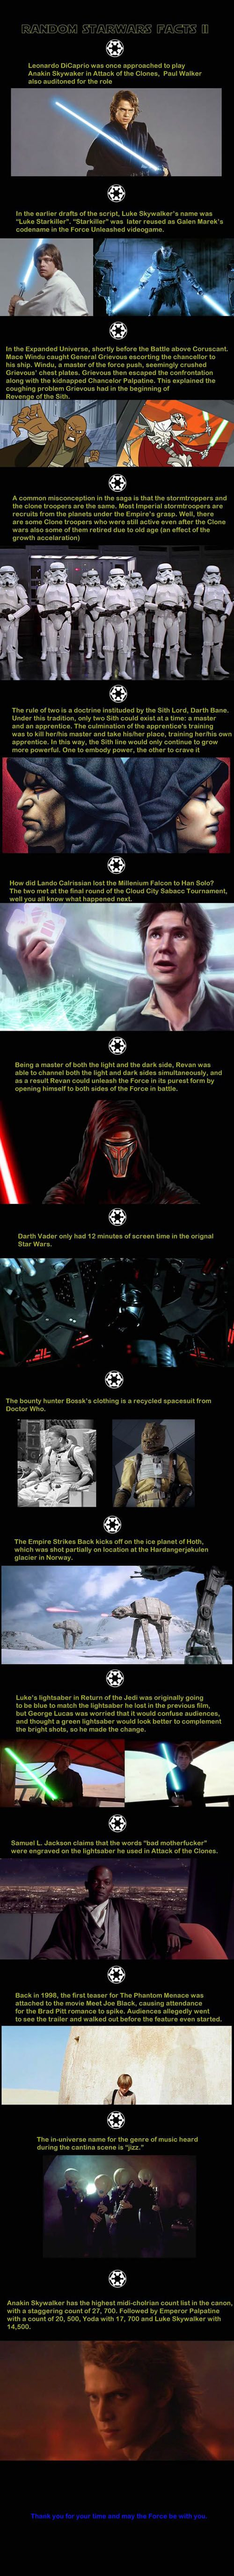 Some Star Wars facts to start your day off